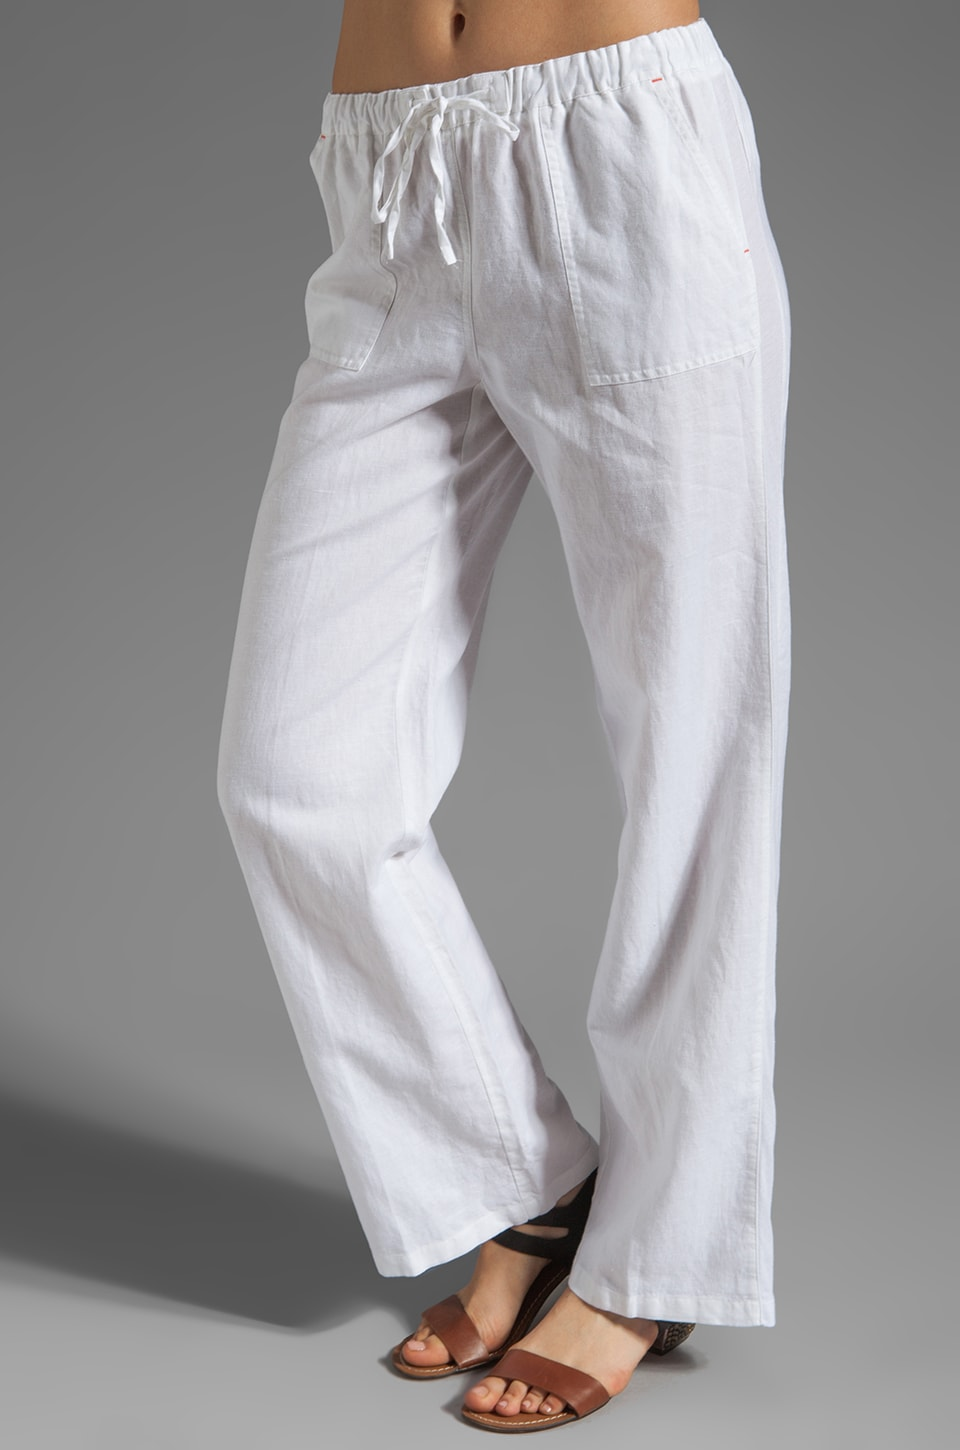 C&C California Linen Pant in White